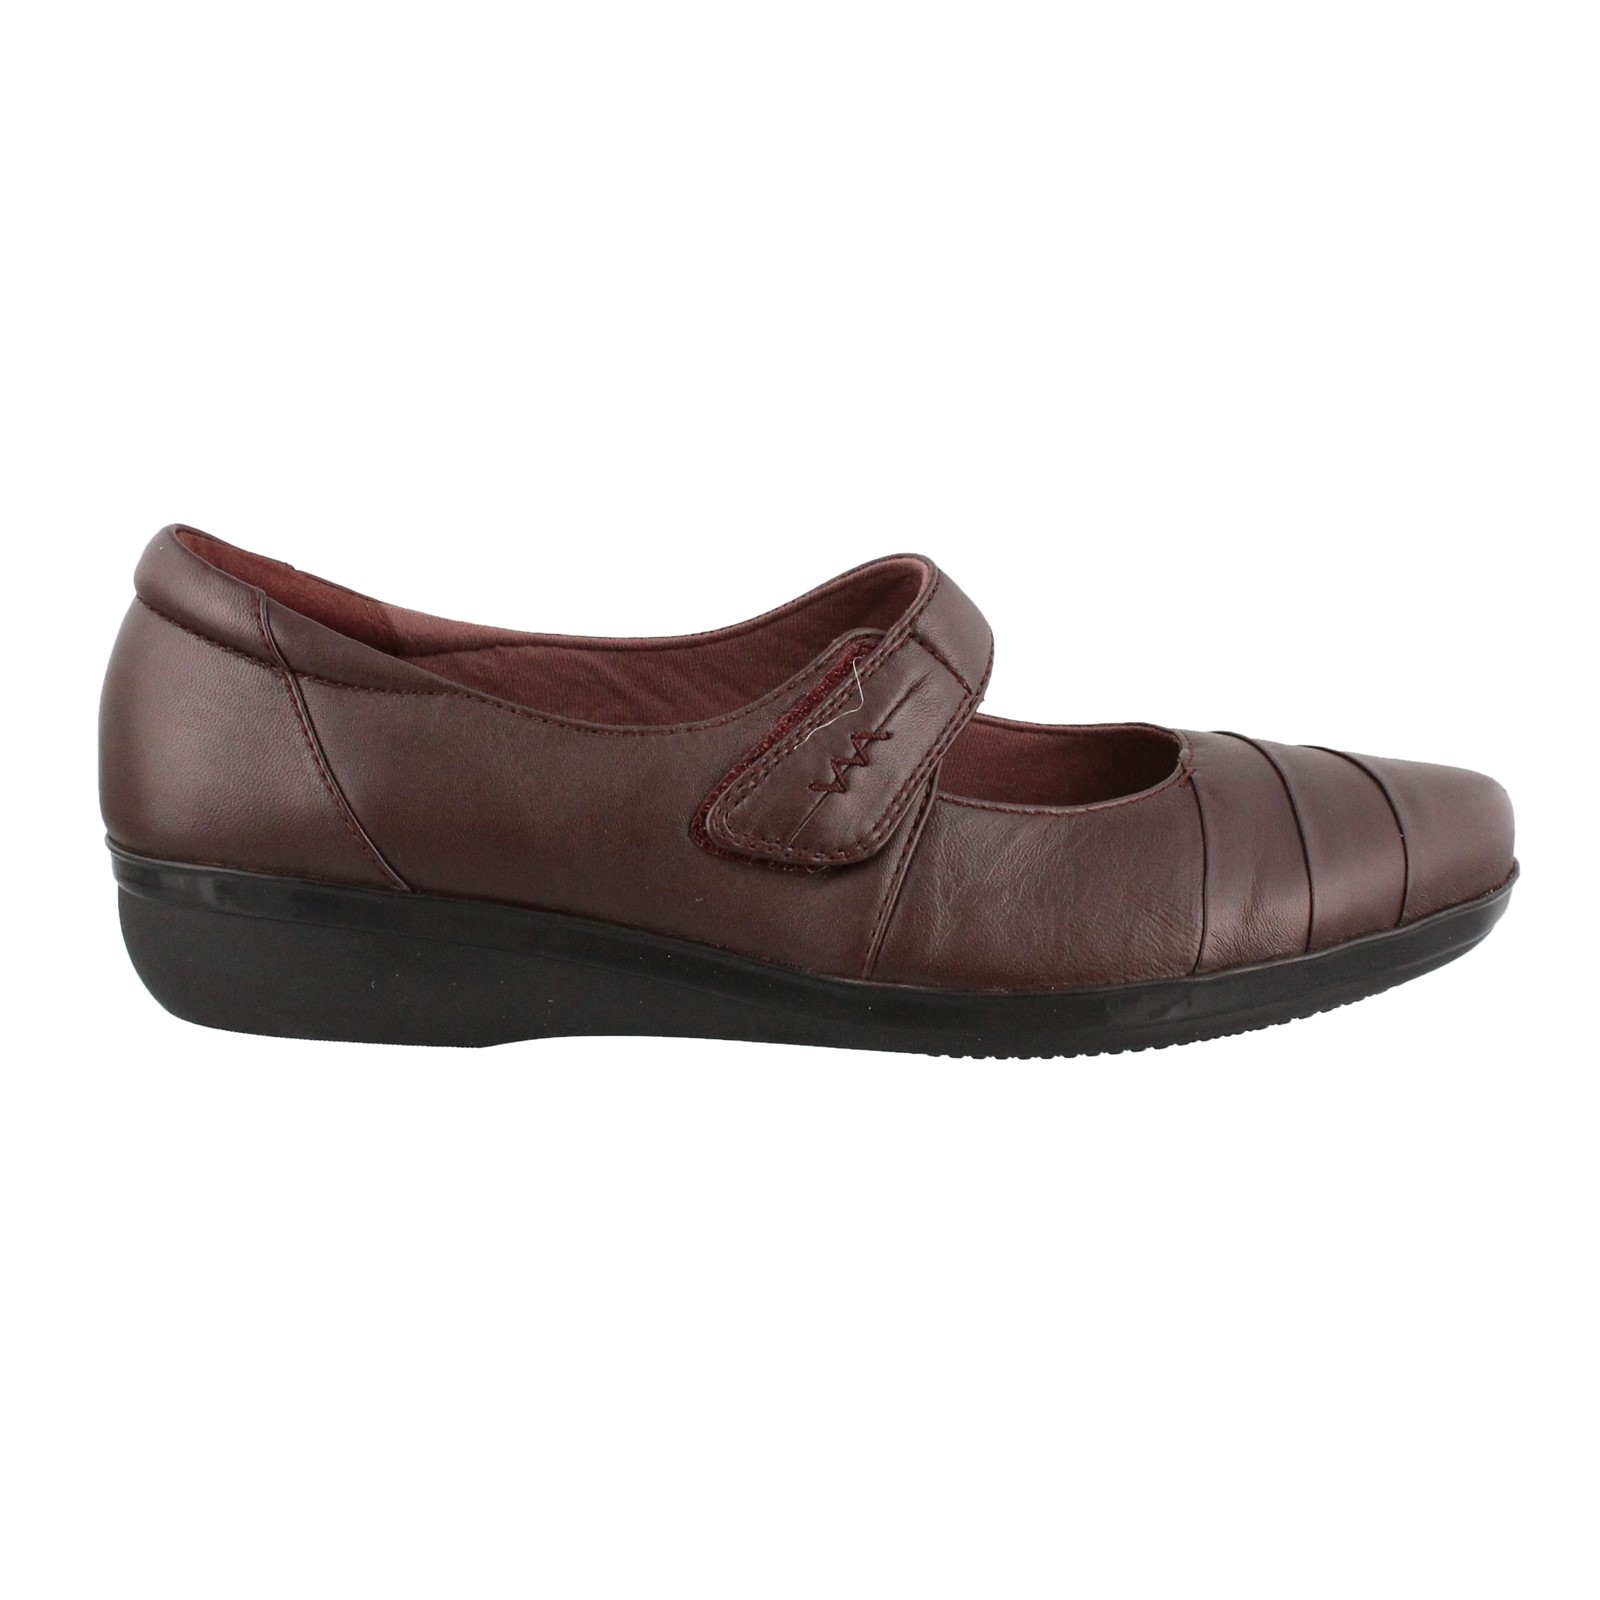 Women's Clarks, Everlay Kennon Low Heel Shoe